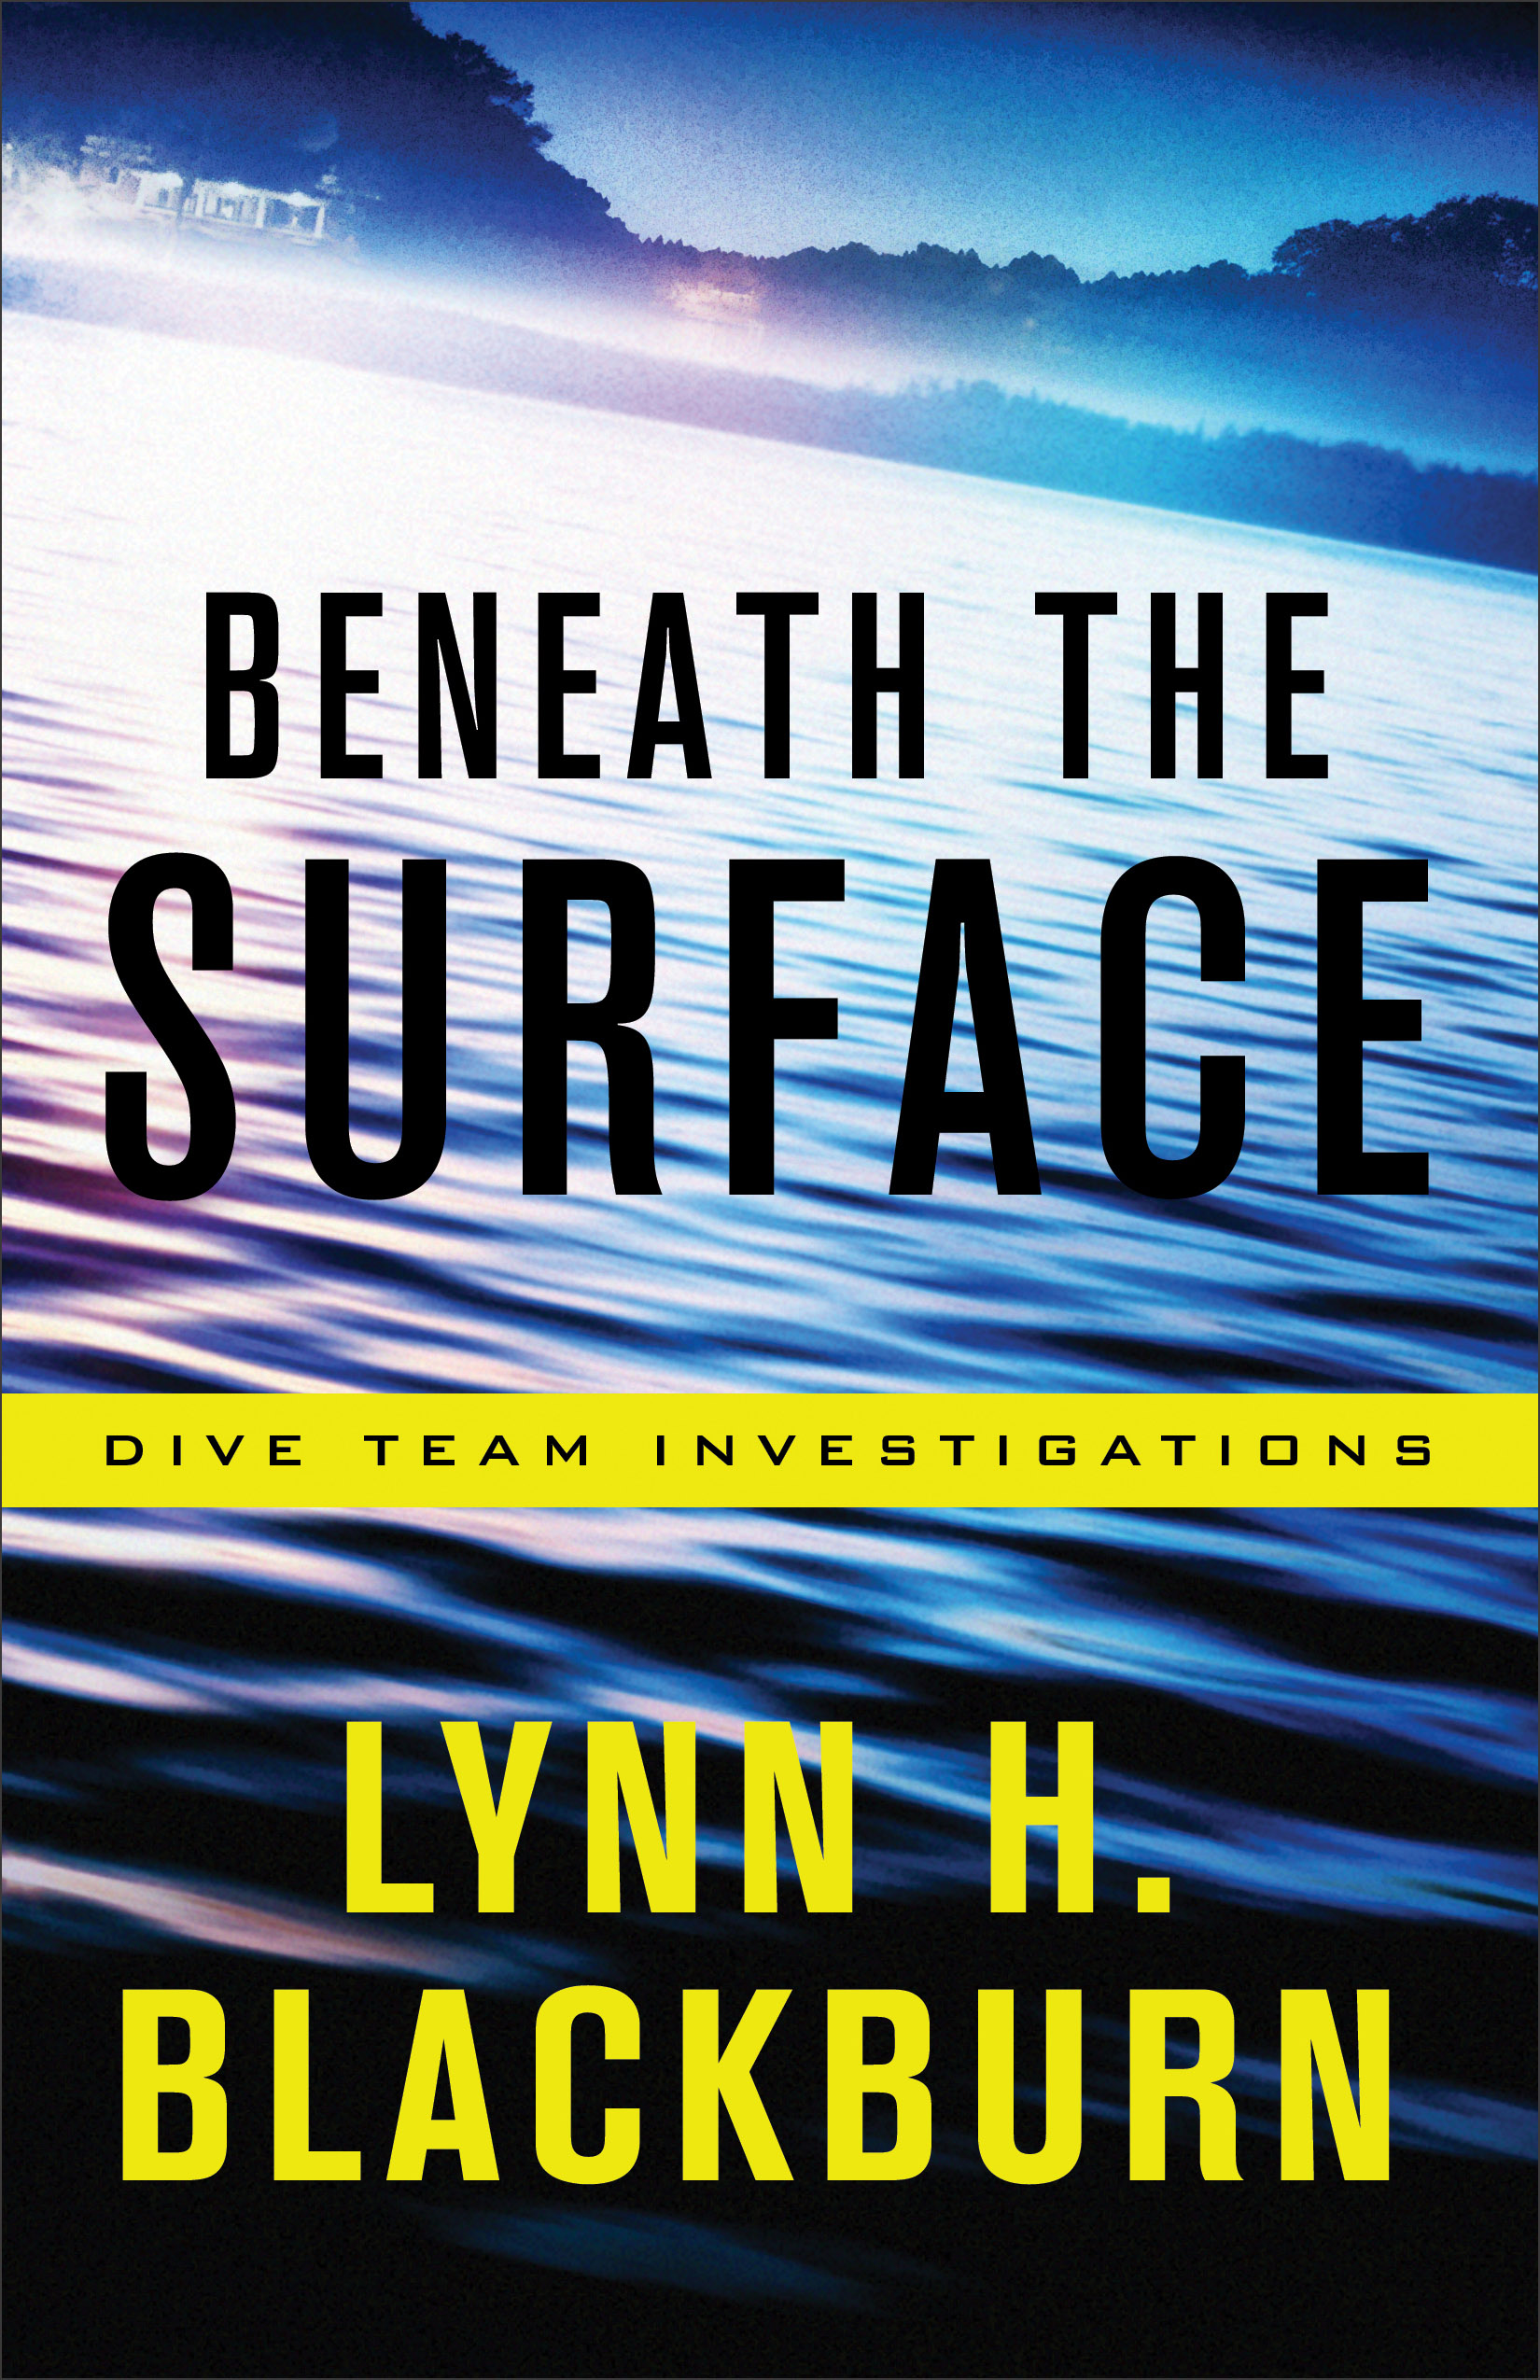 Book review of Beneath The Surface by Lynn H Blackburn (Revell) by papertapepins